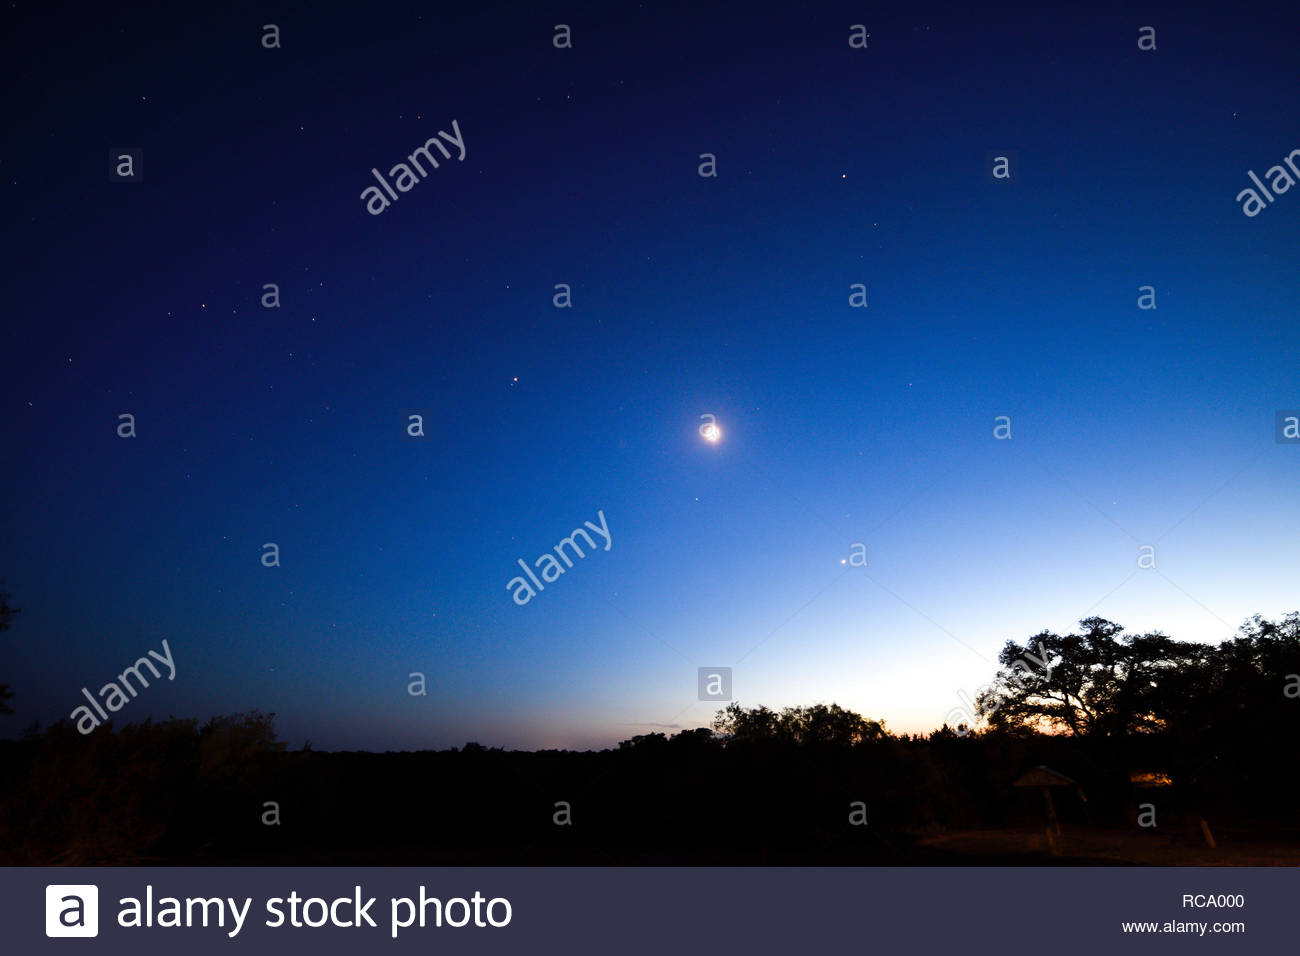 Venus in the evening sky at sunset. The planet Venus appears very bright over the Texas Hill Country at sunset. Venus over Fredericksburg Texas USA - Stock Image